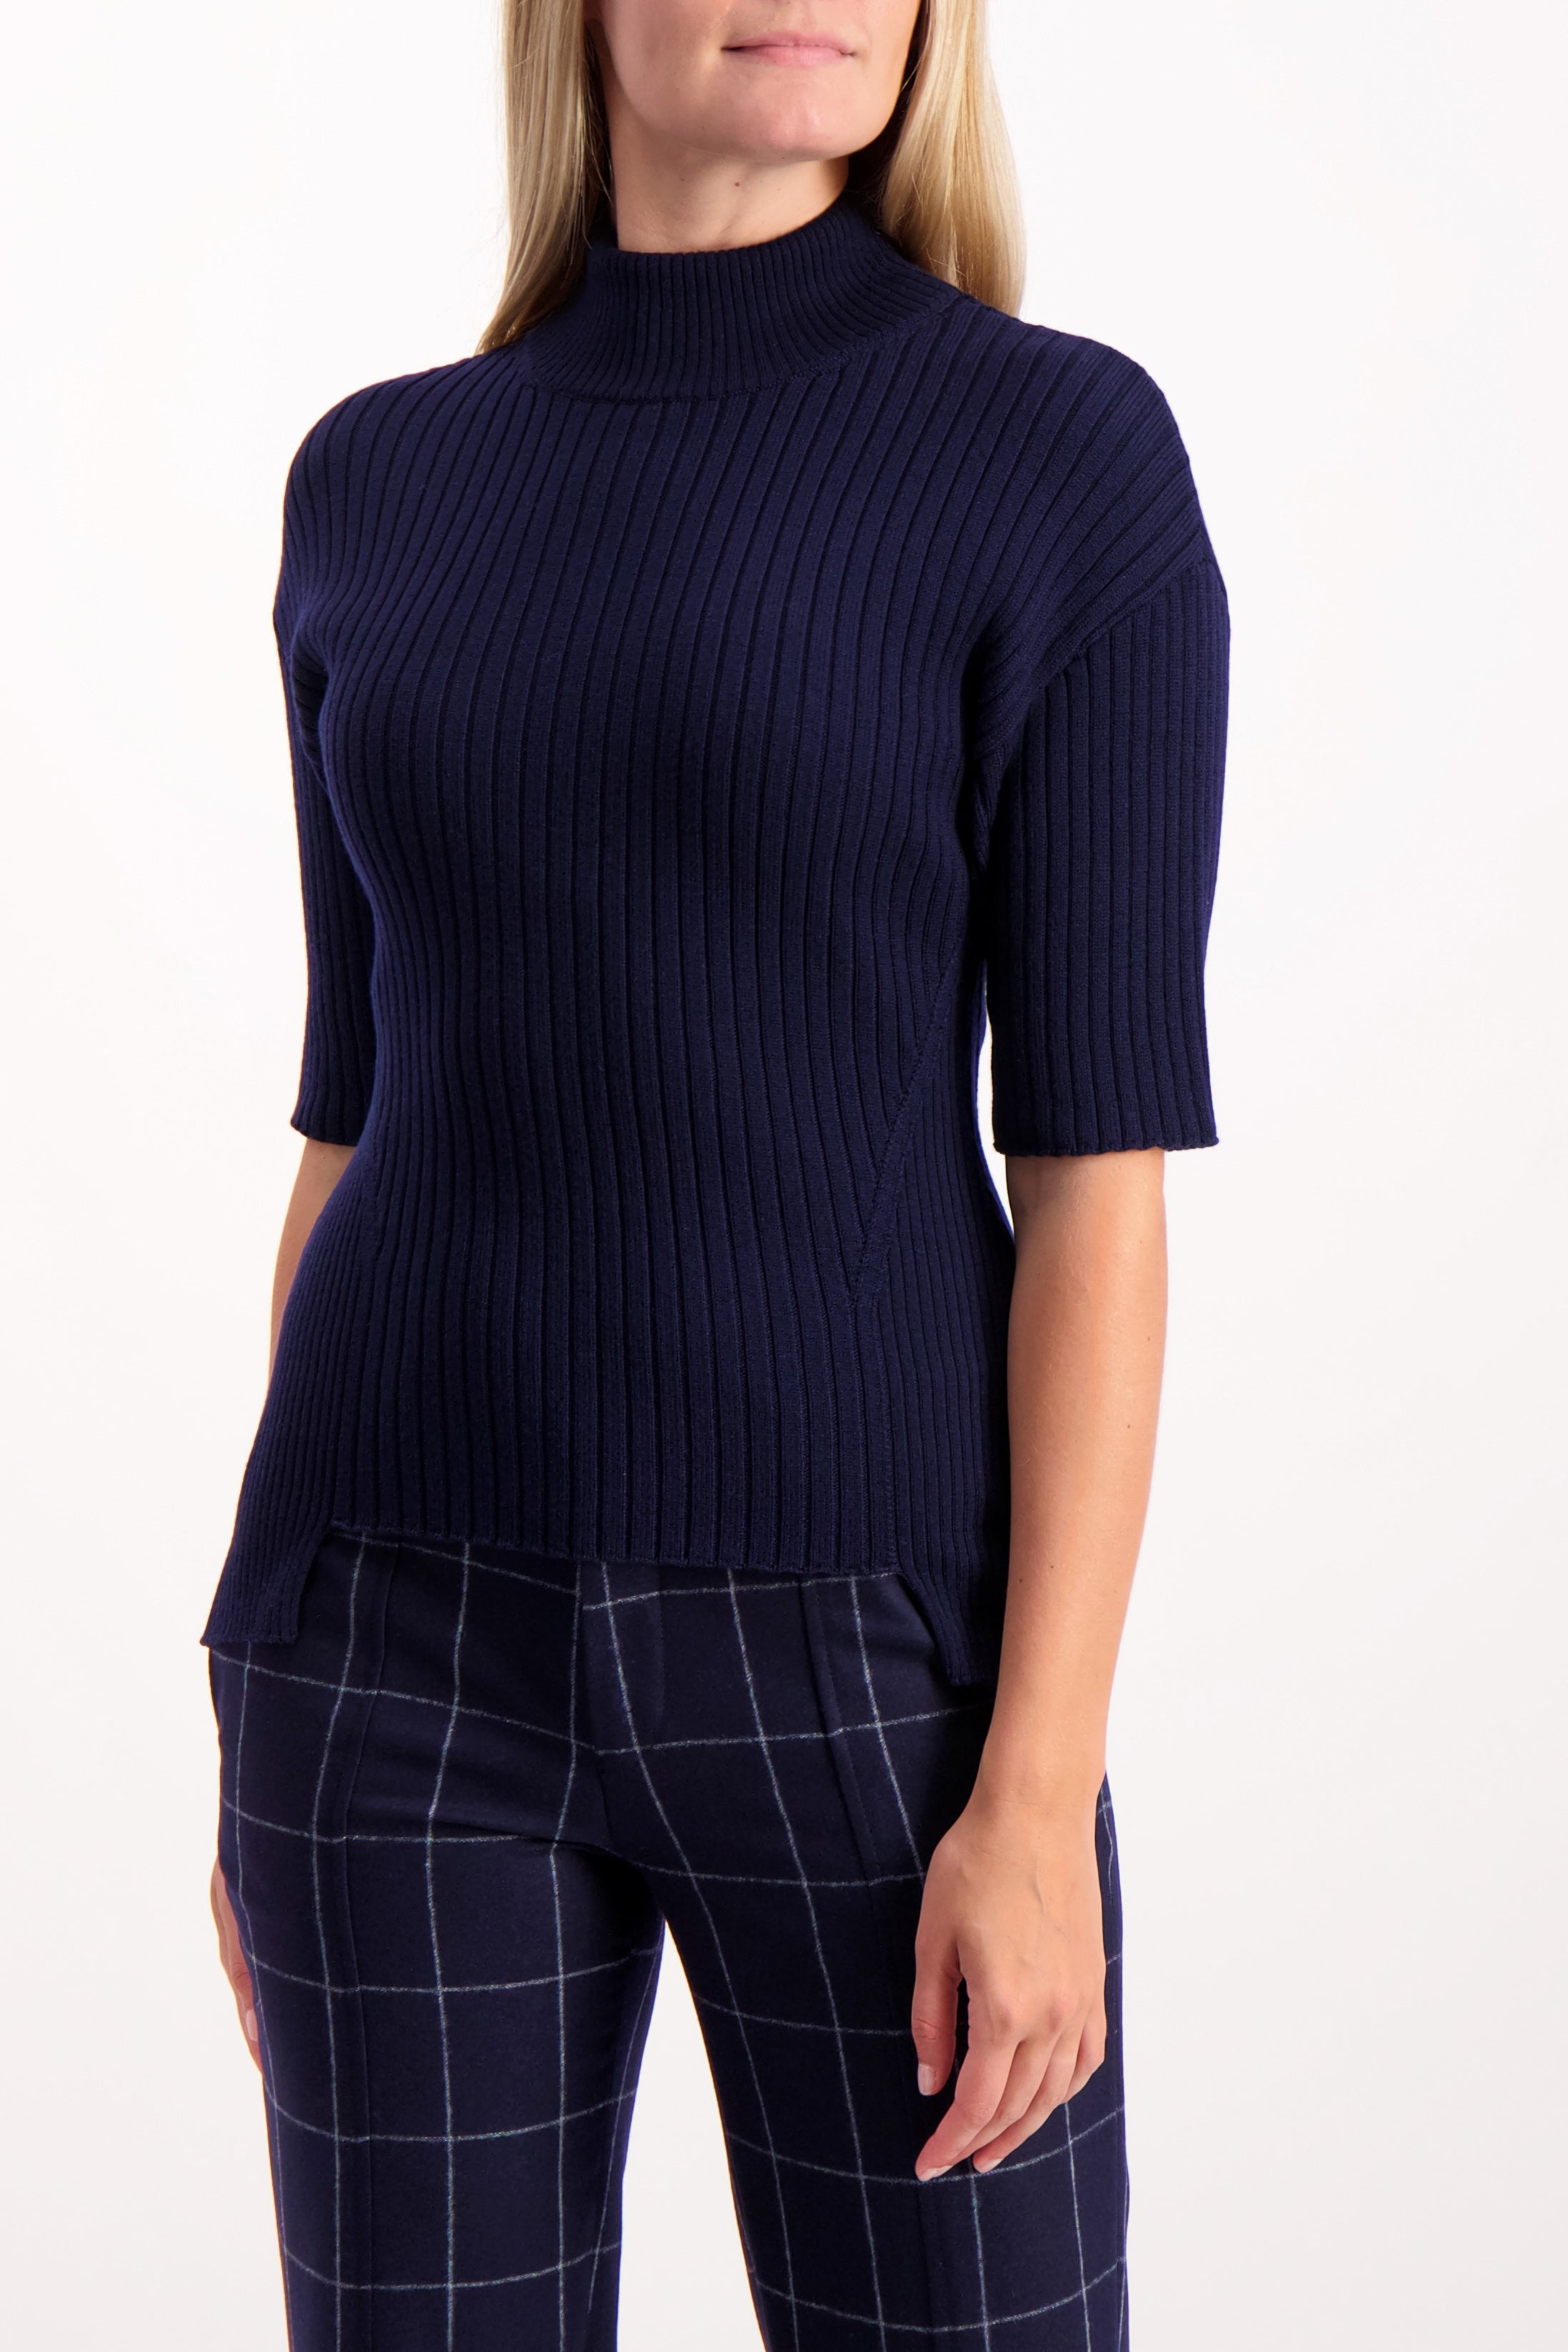 Front Image Of Image Of Model Wearing Each x Other Short Sleeve Rib Knit High Neck Sweater